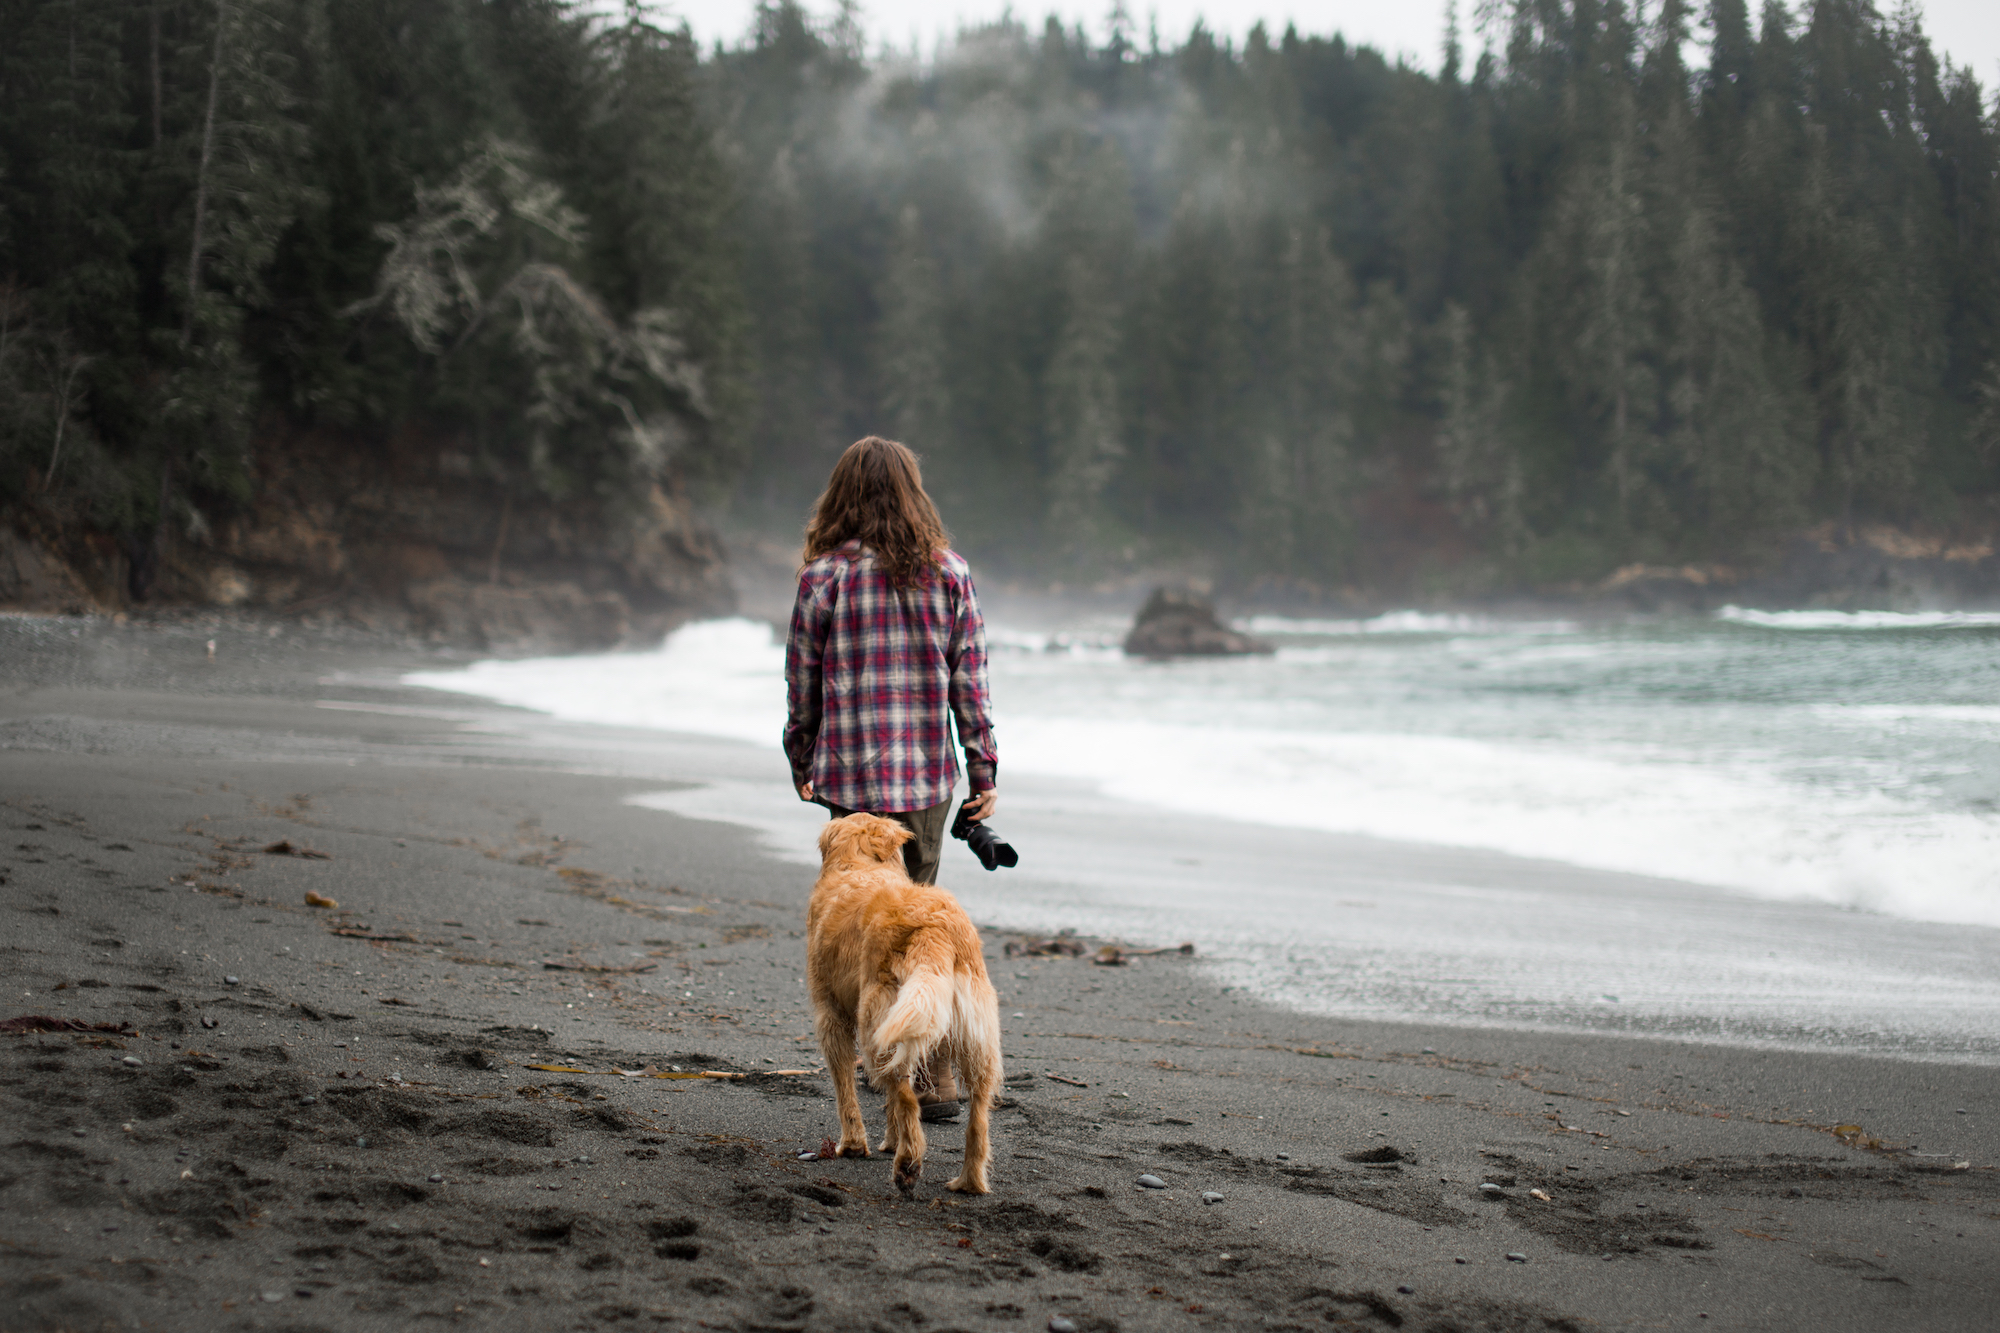 What will cell service mean for Port Renfrew's future? - Capital Daily